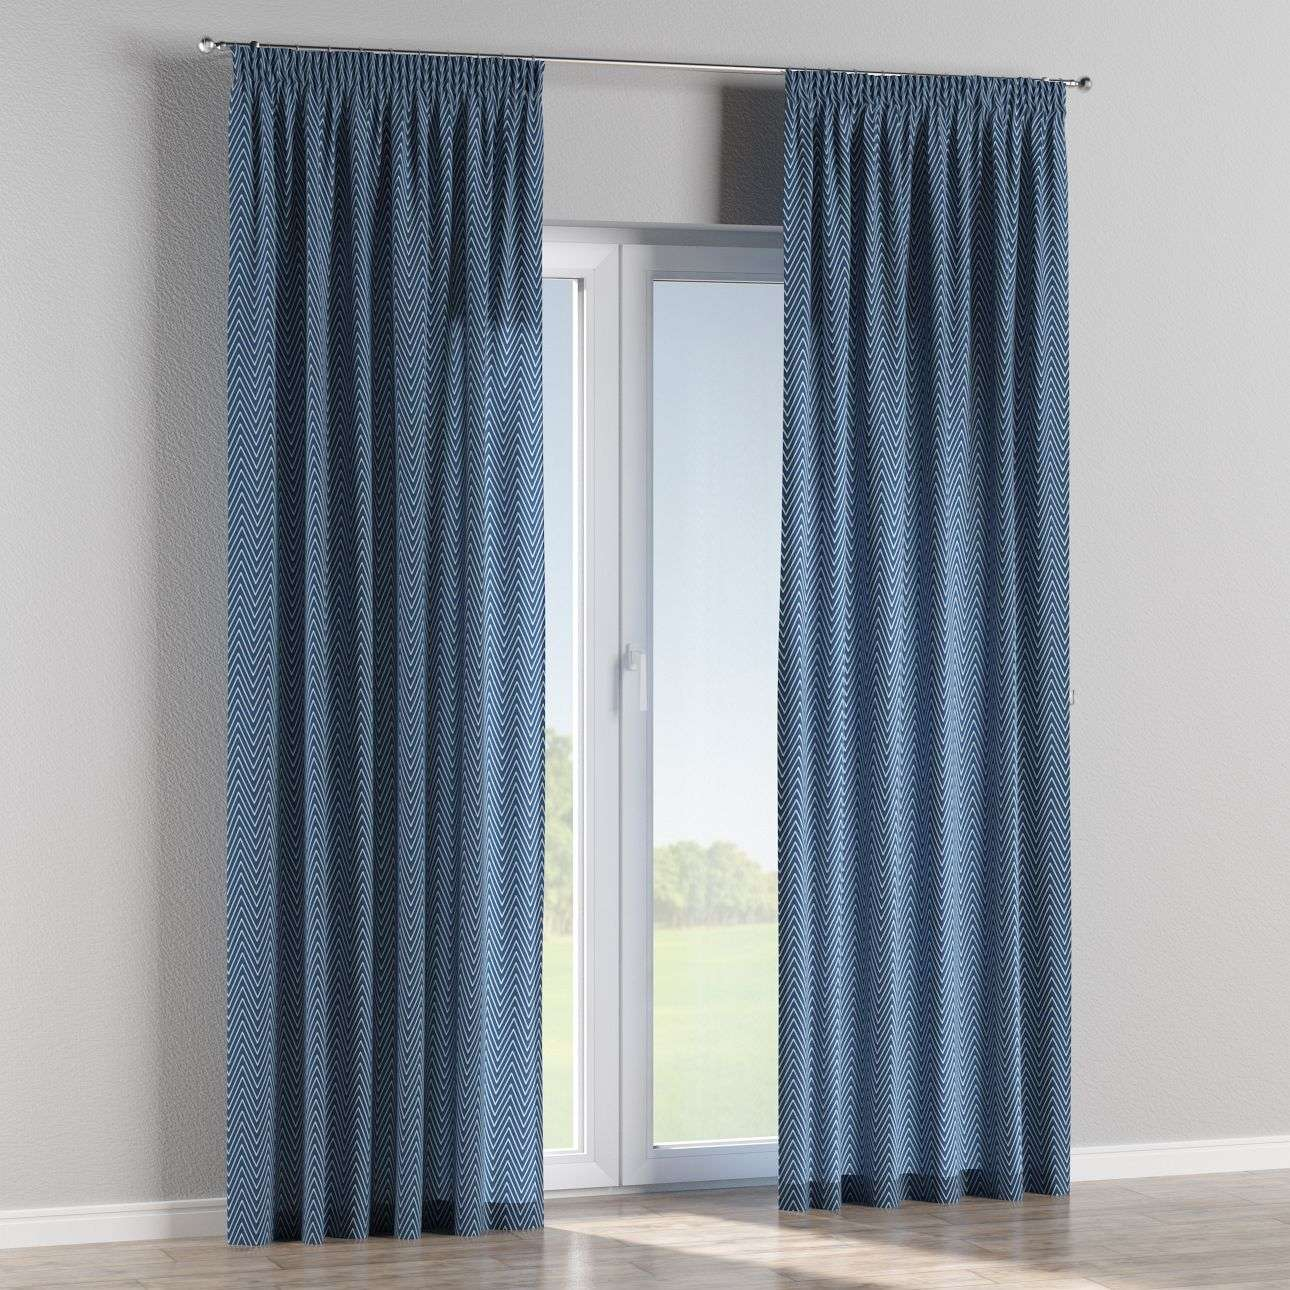 Pencil pleat curtains 130 x 260 cm (51 x 102 inch) in collection Brooklyn, fabric: 137-88